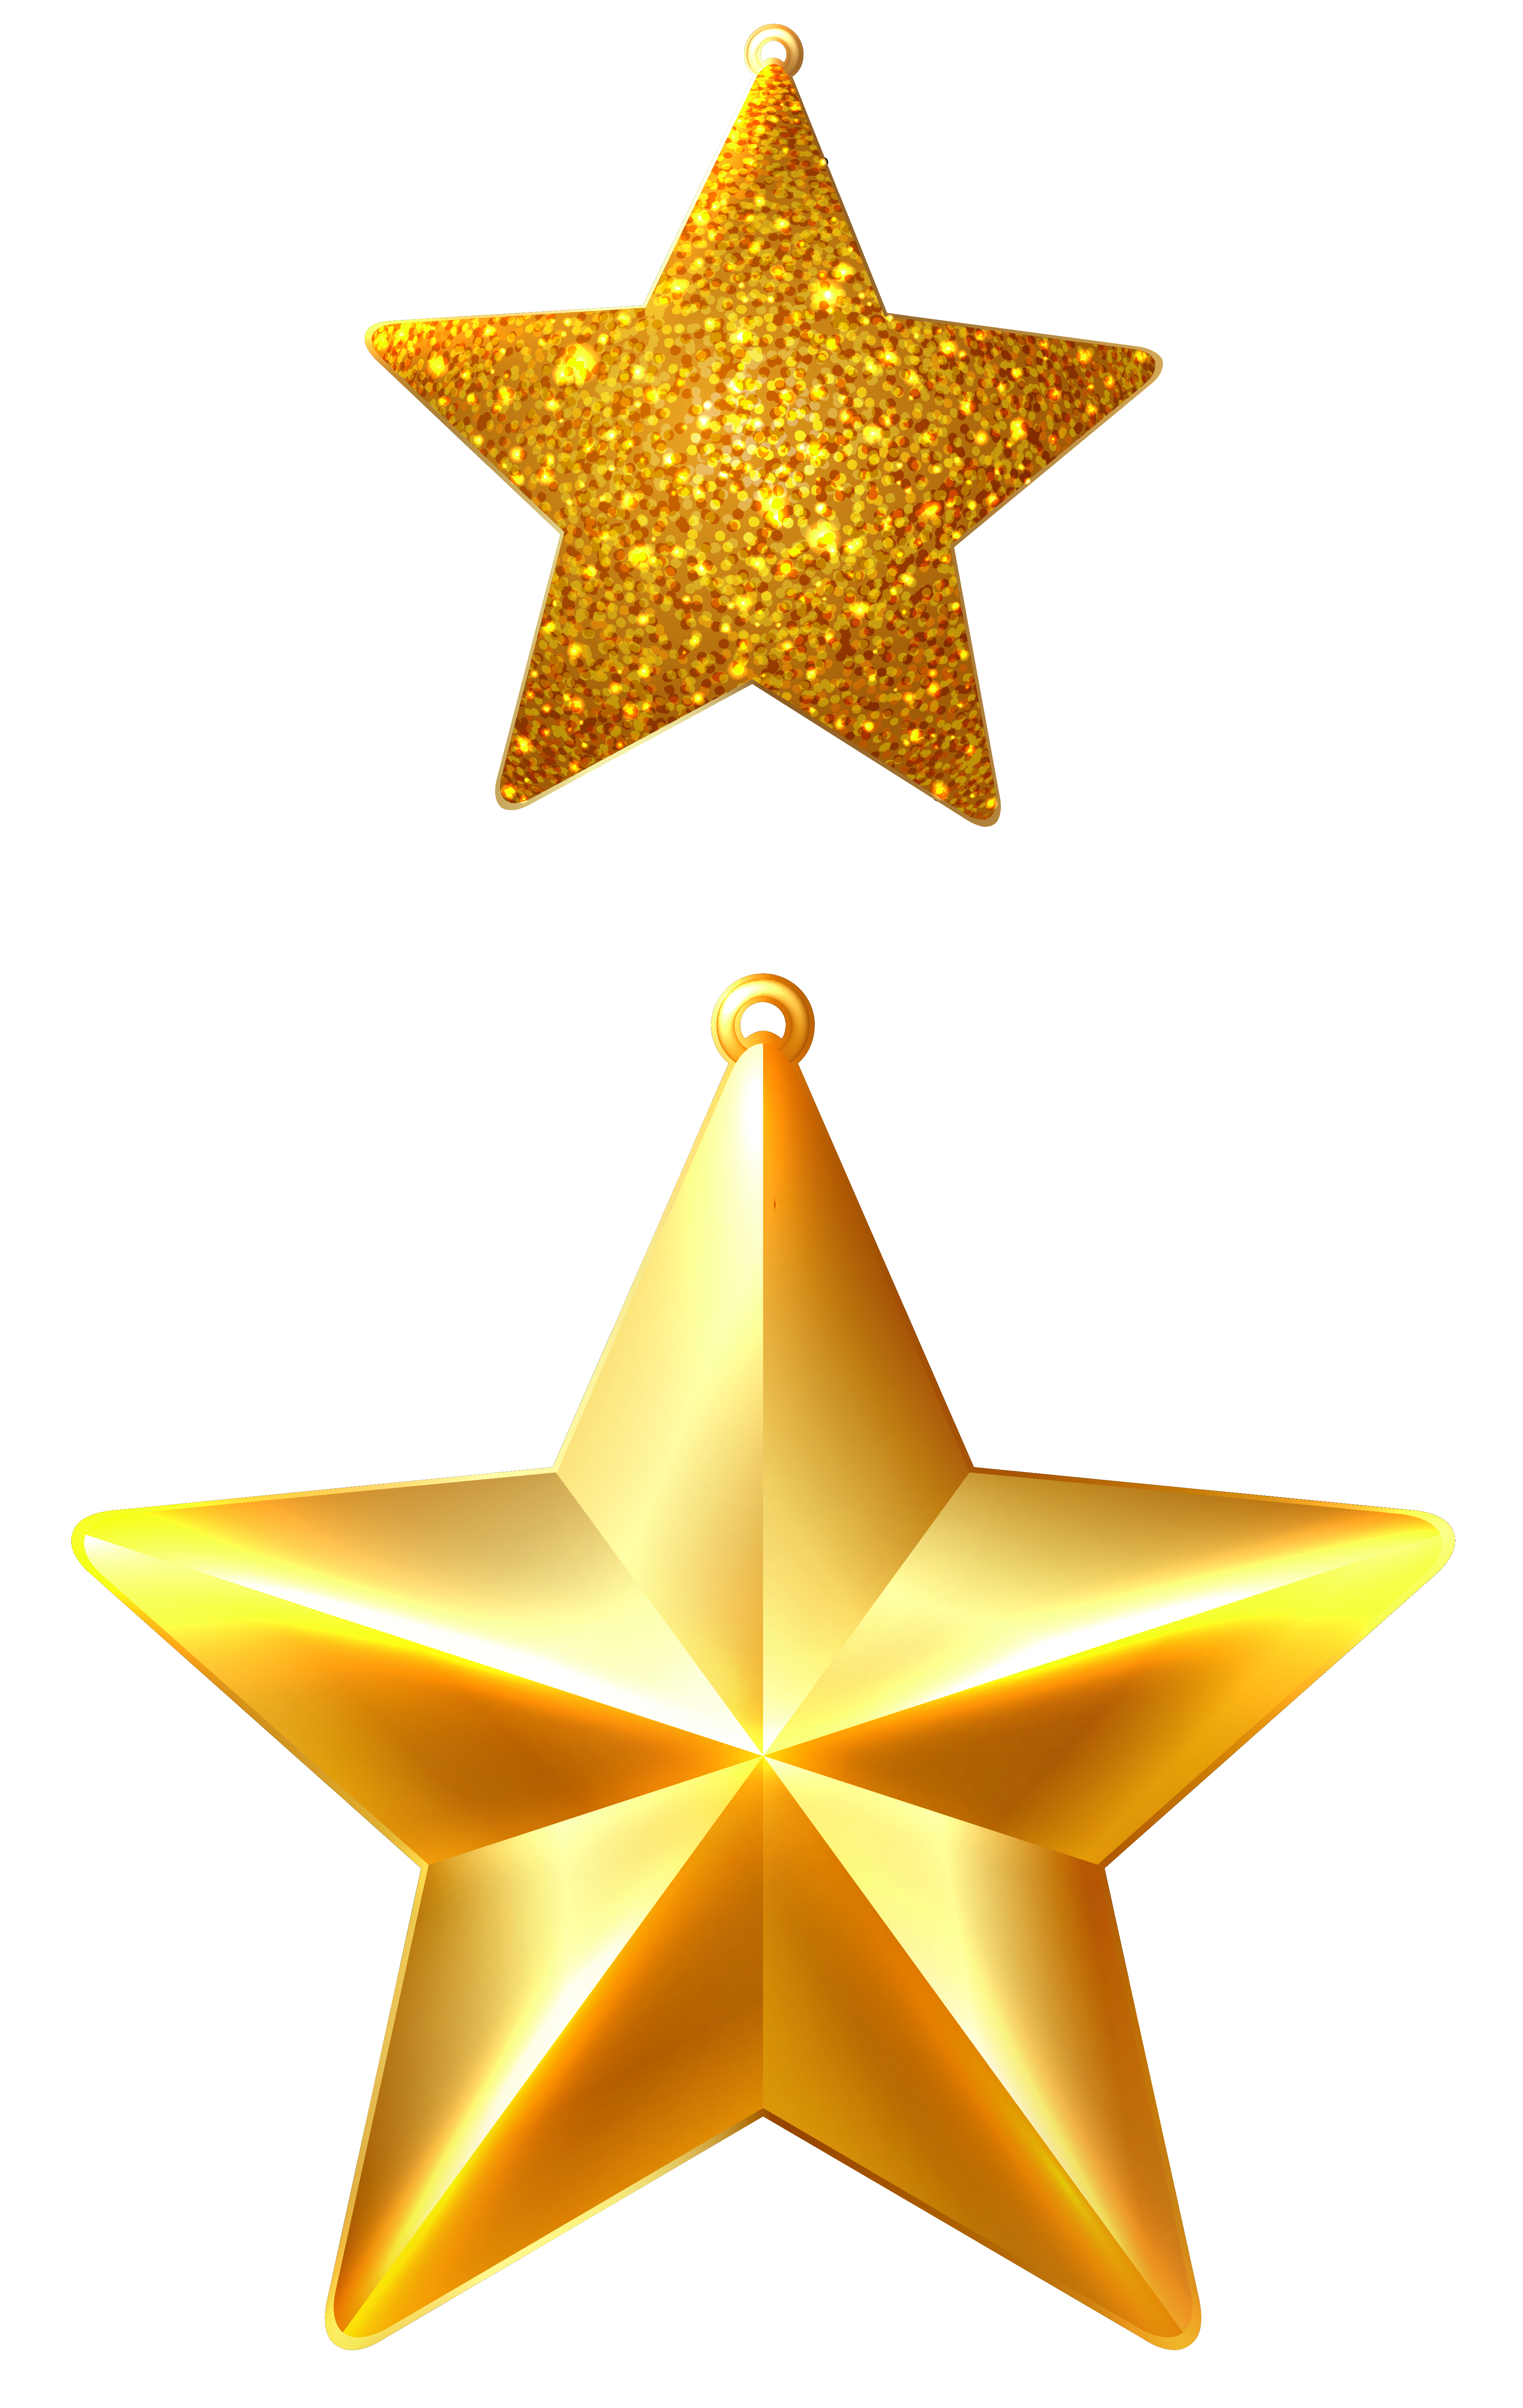 Christmas stars png. Ornaments clipart image gallery